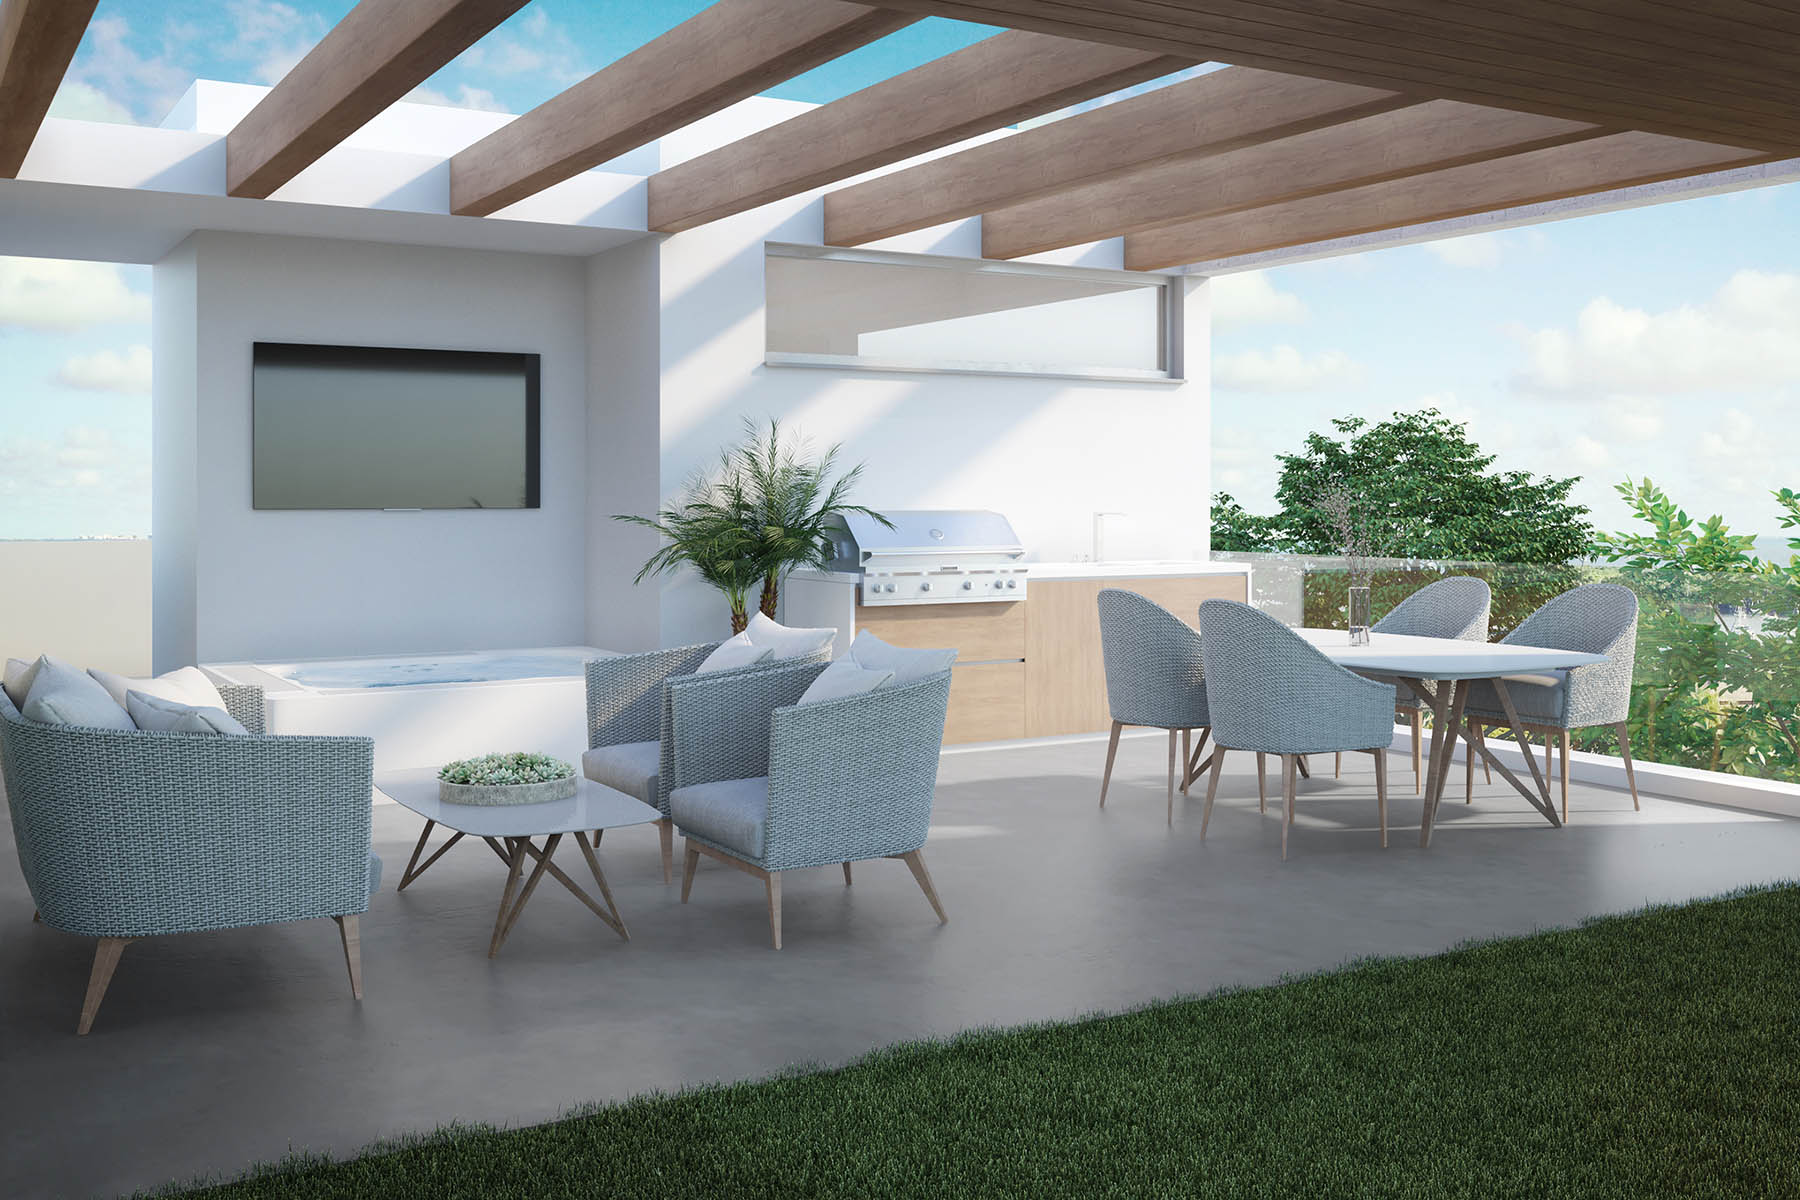 townhouses for Active at 2924 Bird Avenue 2 Coconut Grove, Florida 33133 United States